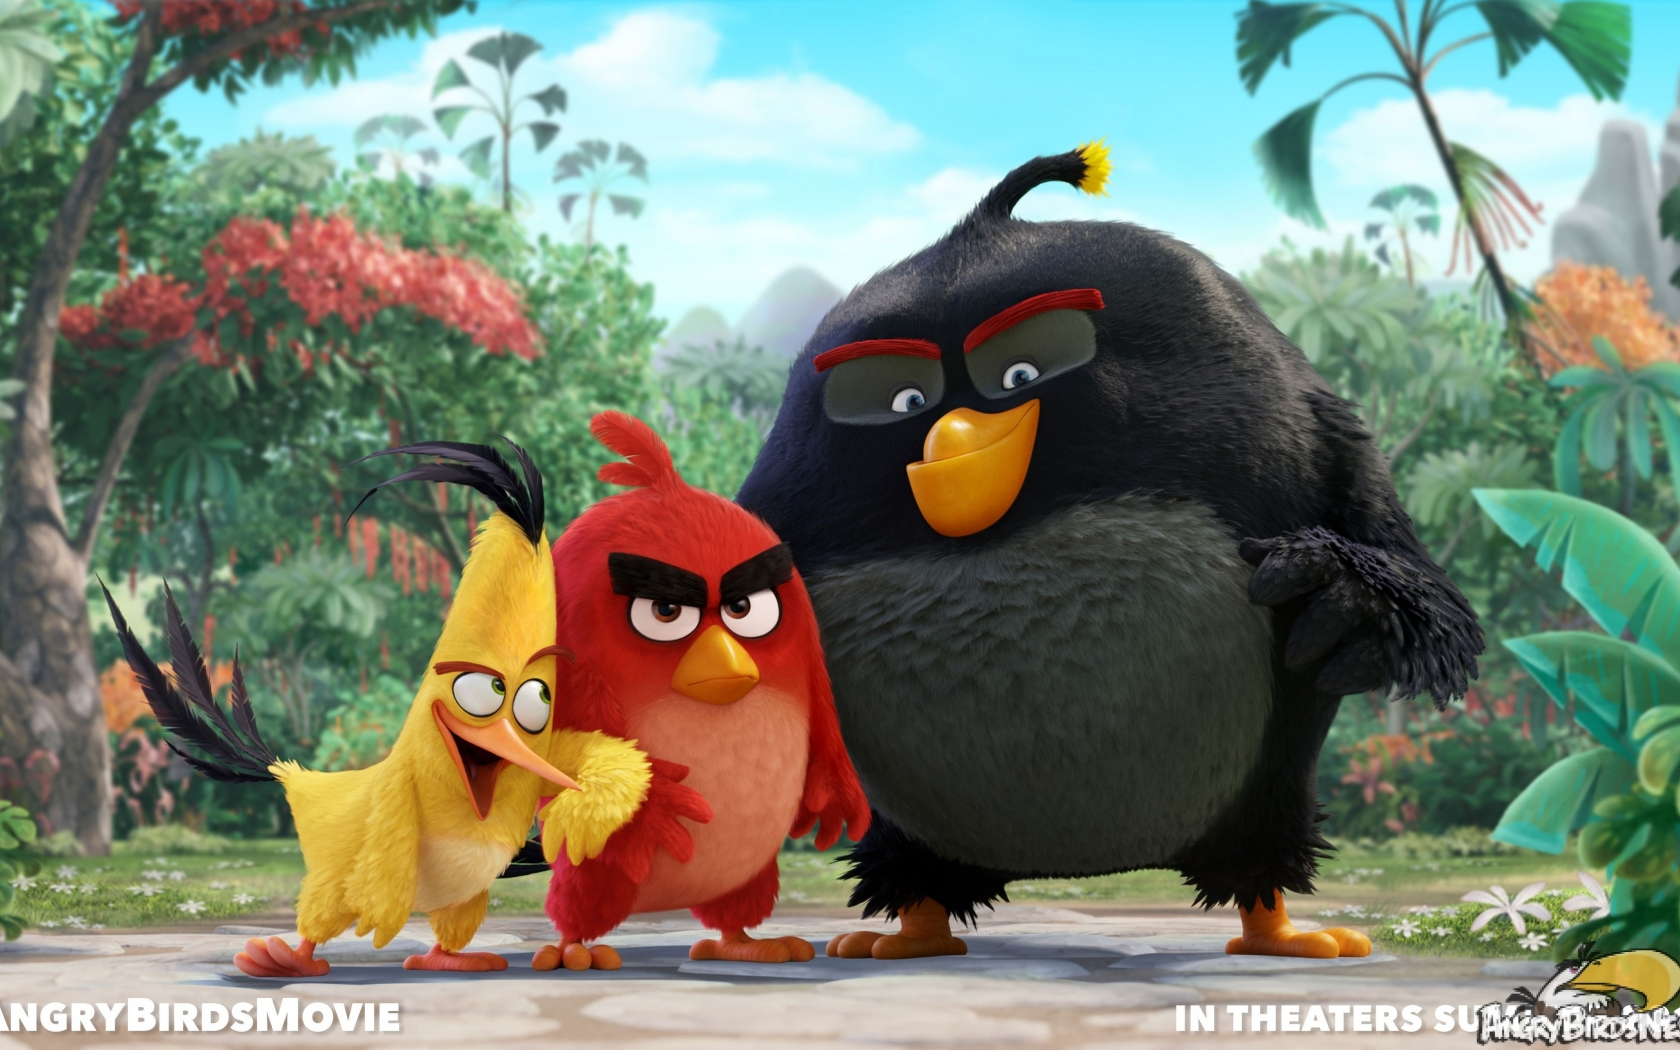 Angry Birds Movie for 1680 x 1050 widescreen resolution